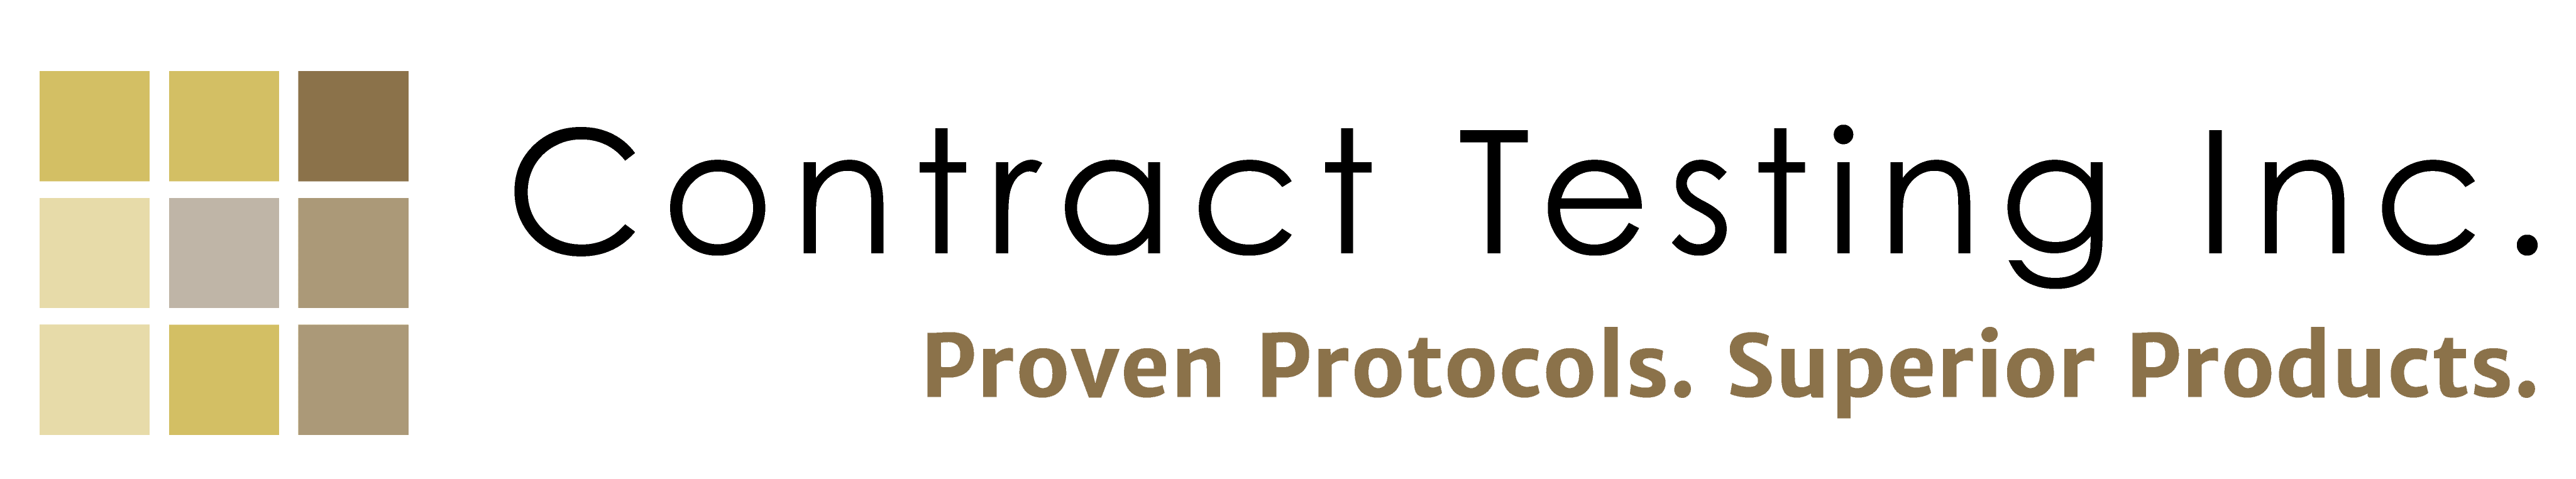 Tester Enrollment Contract Testing